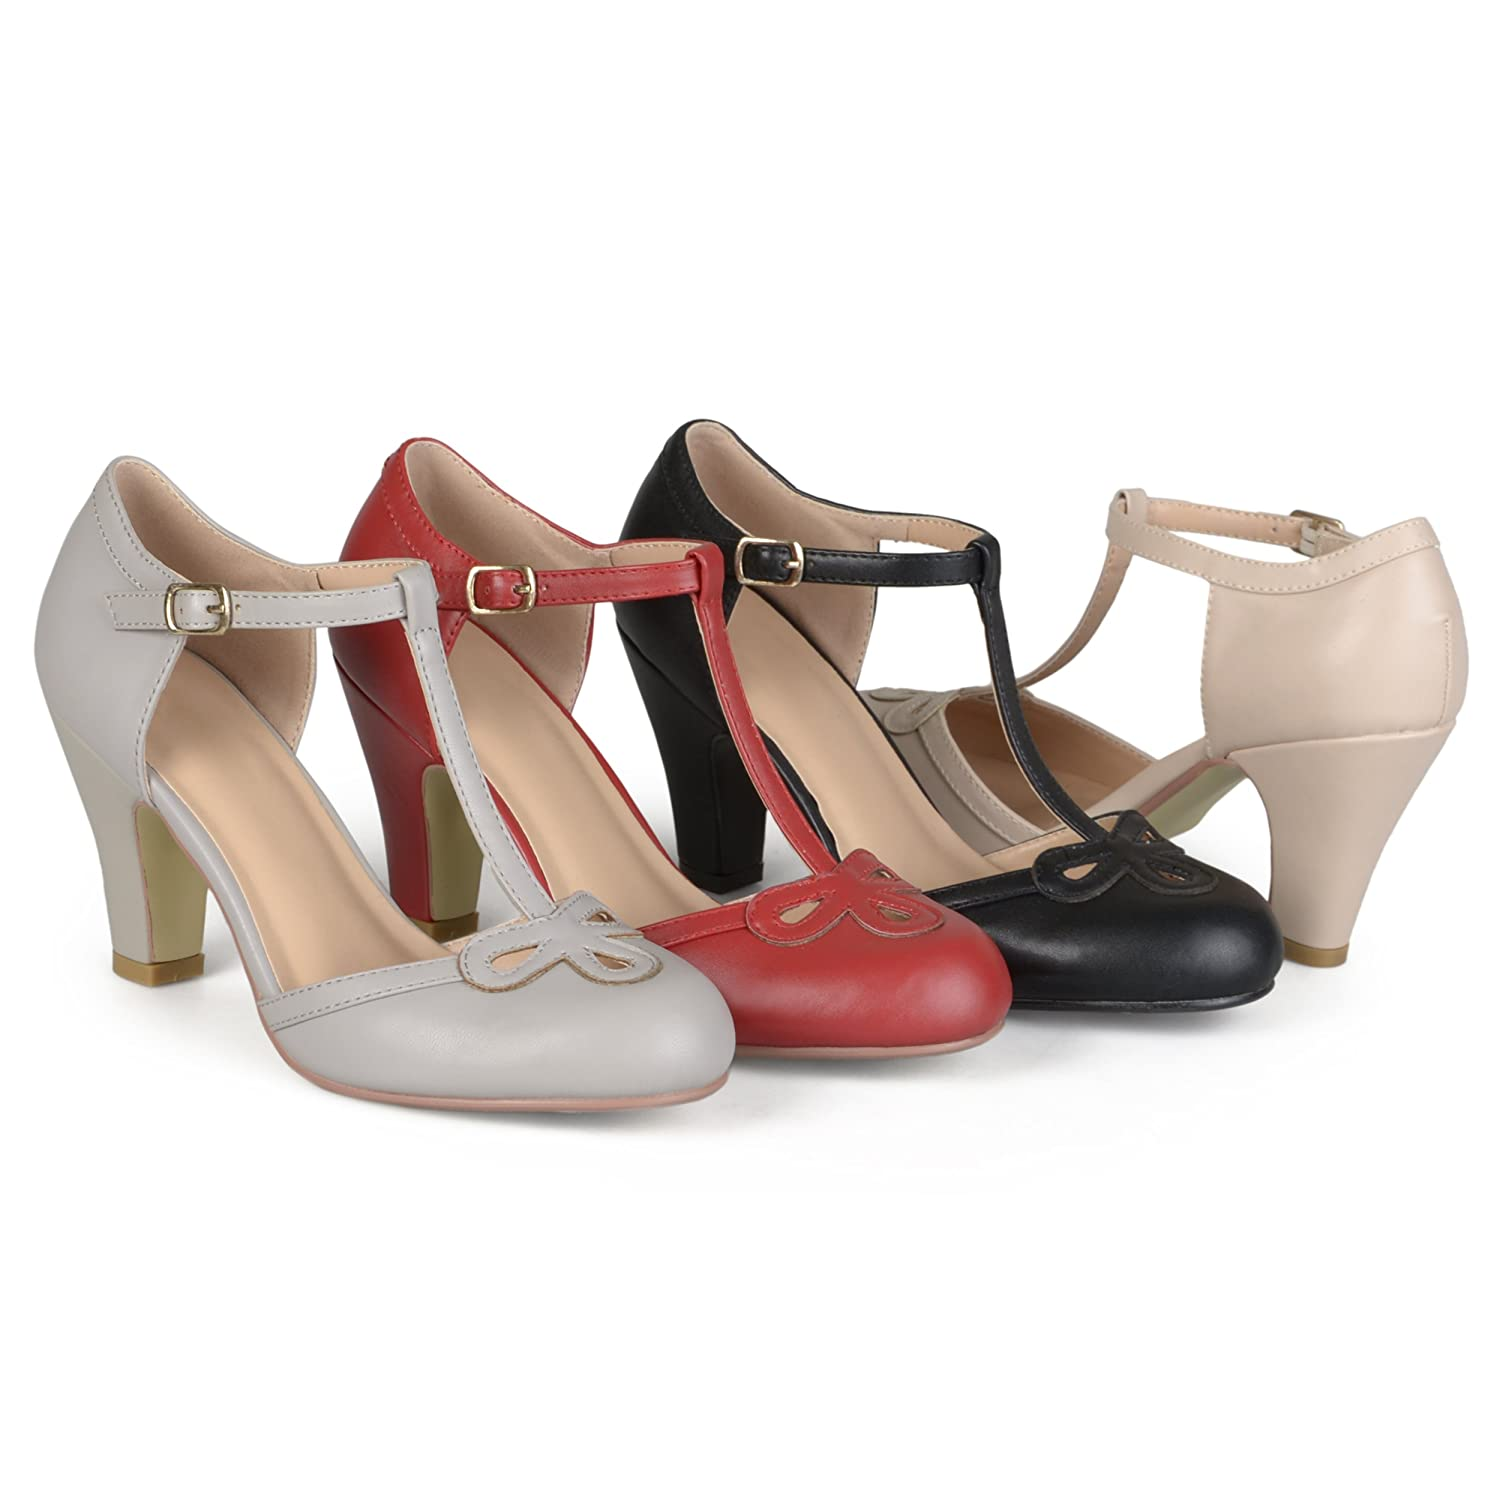 Vintage Style Shoes, Vintage Inspired Shoes Brinley Co Womens Patsie Pump $35.99 AT vintagedancer.com